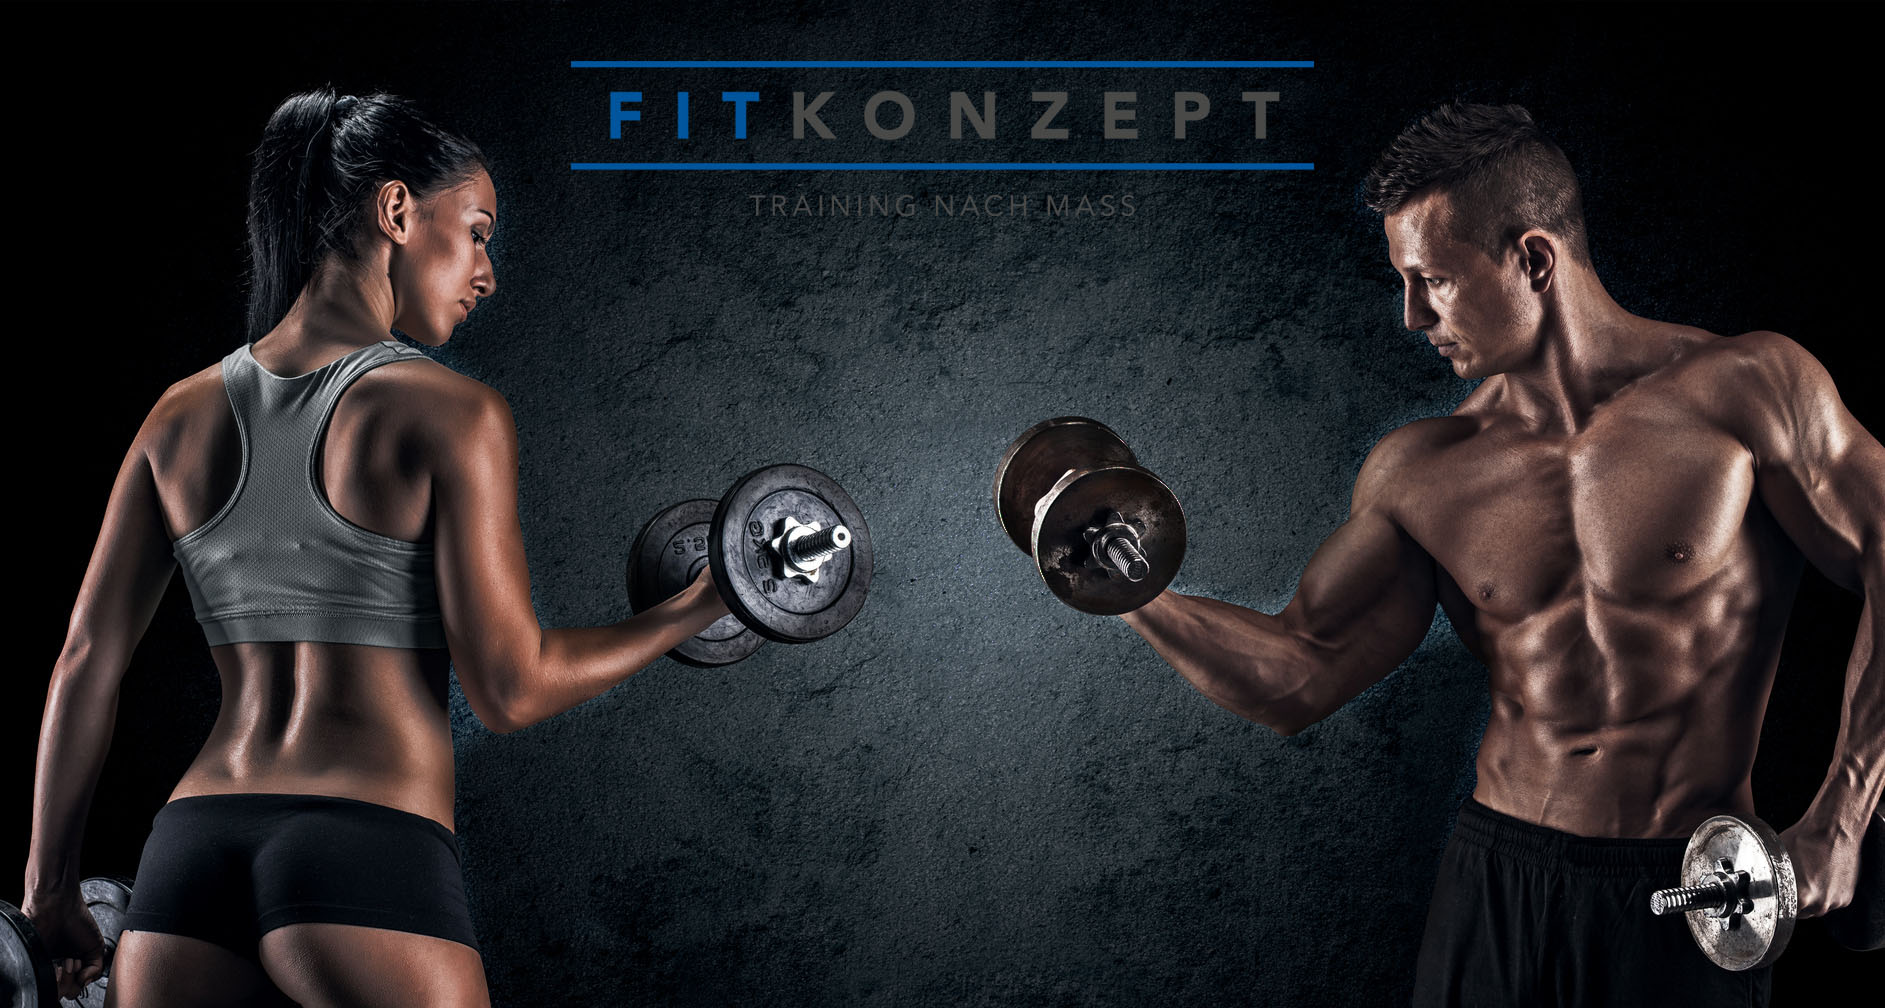 Fit-Konzept.at